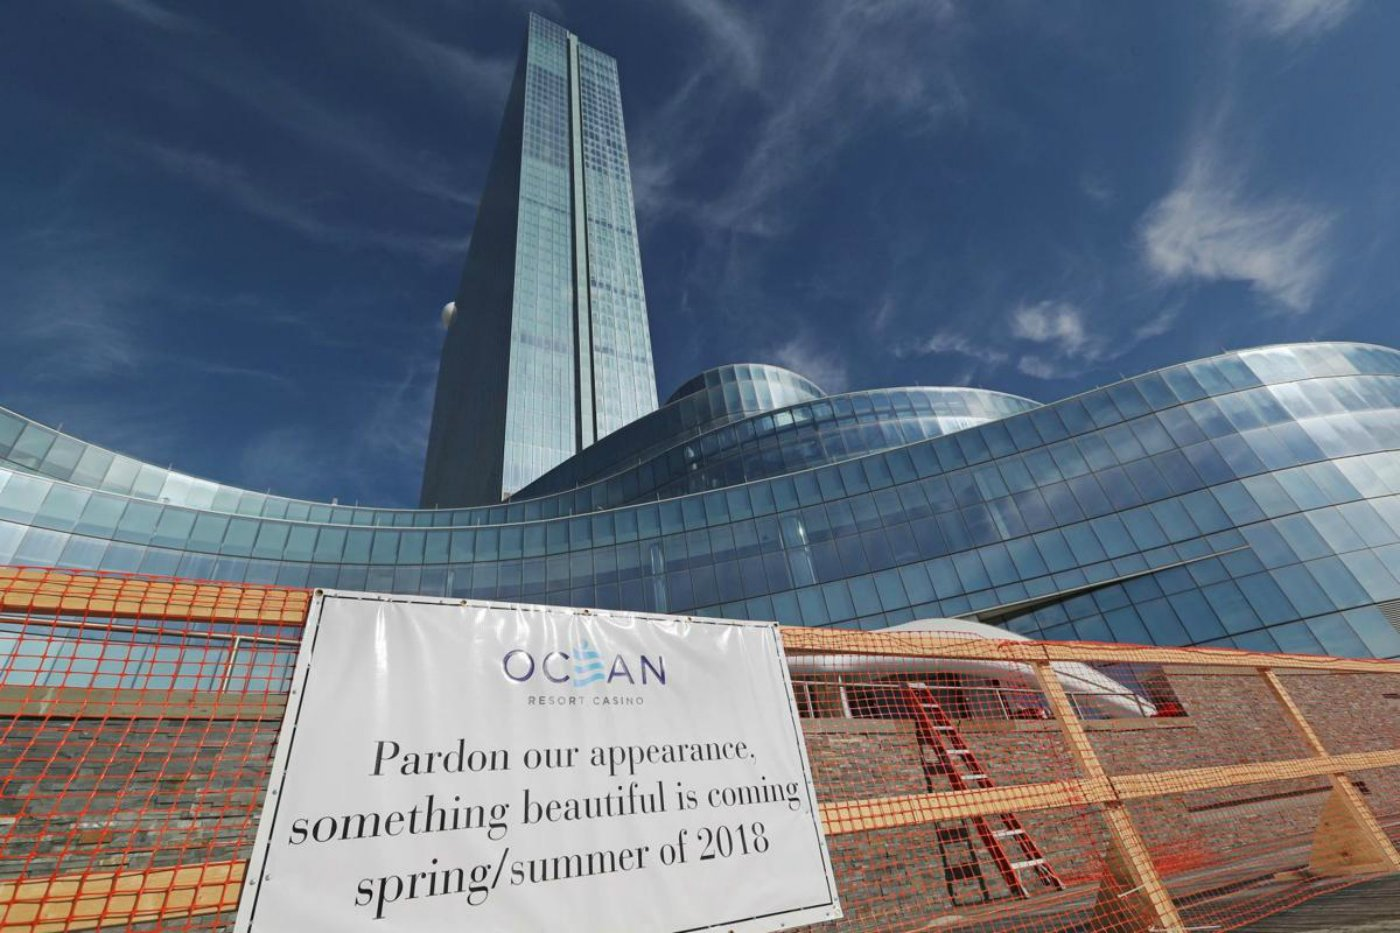 Ocean Resort Casino Owner Explains Atlantic City Investment